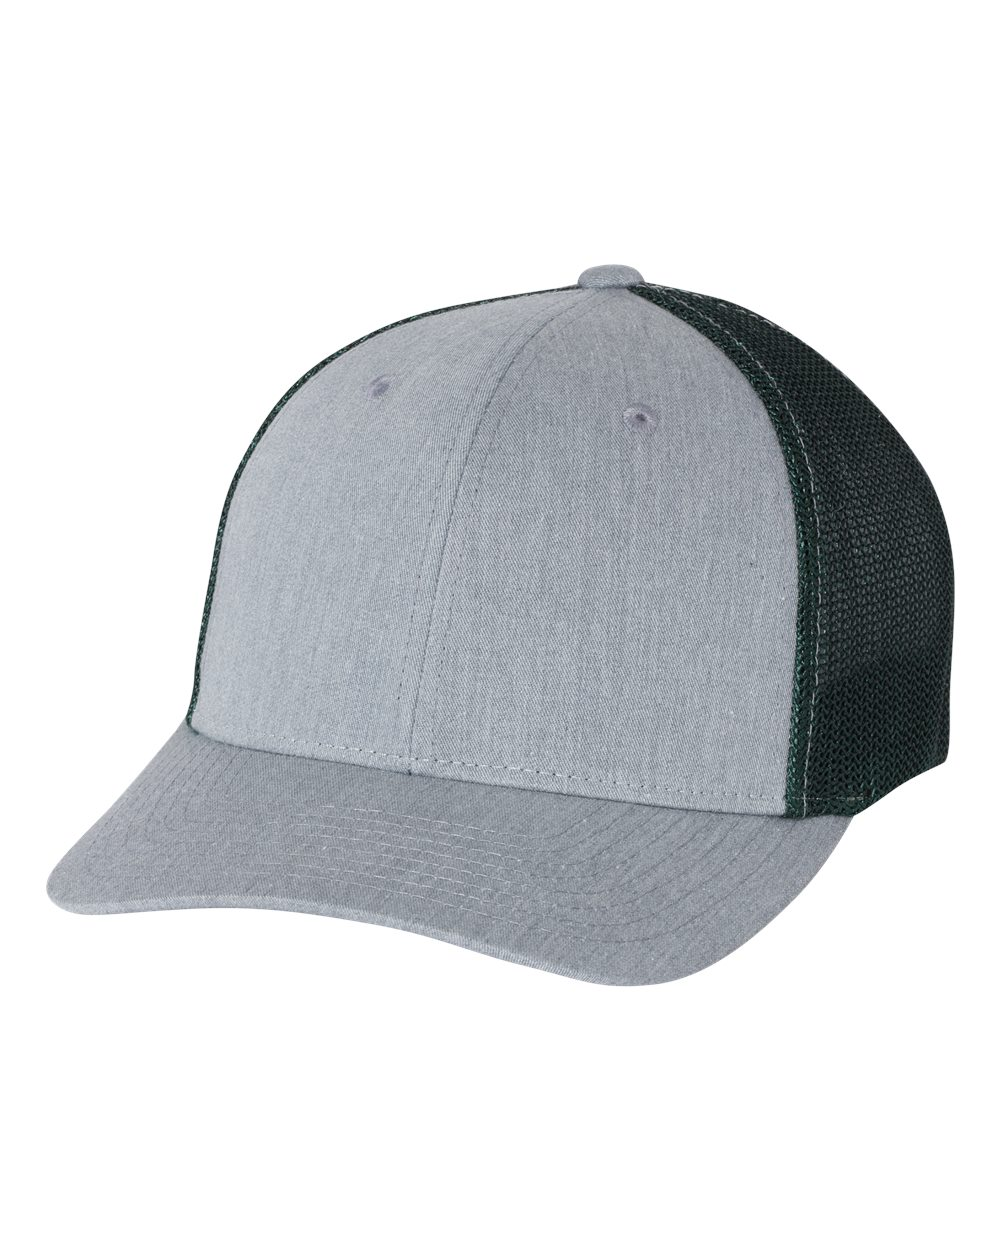 click to view Heather Grey/ Dark Green